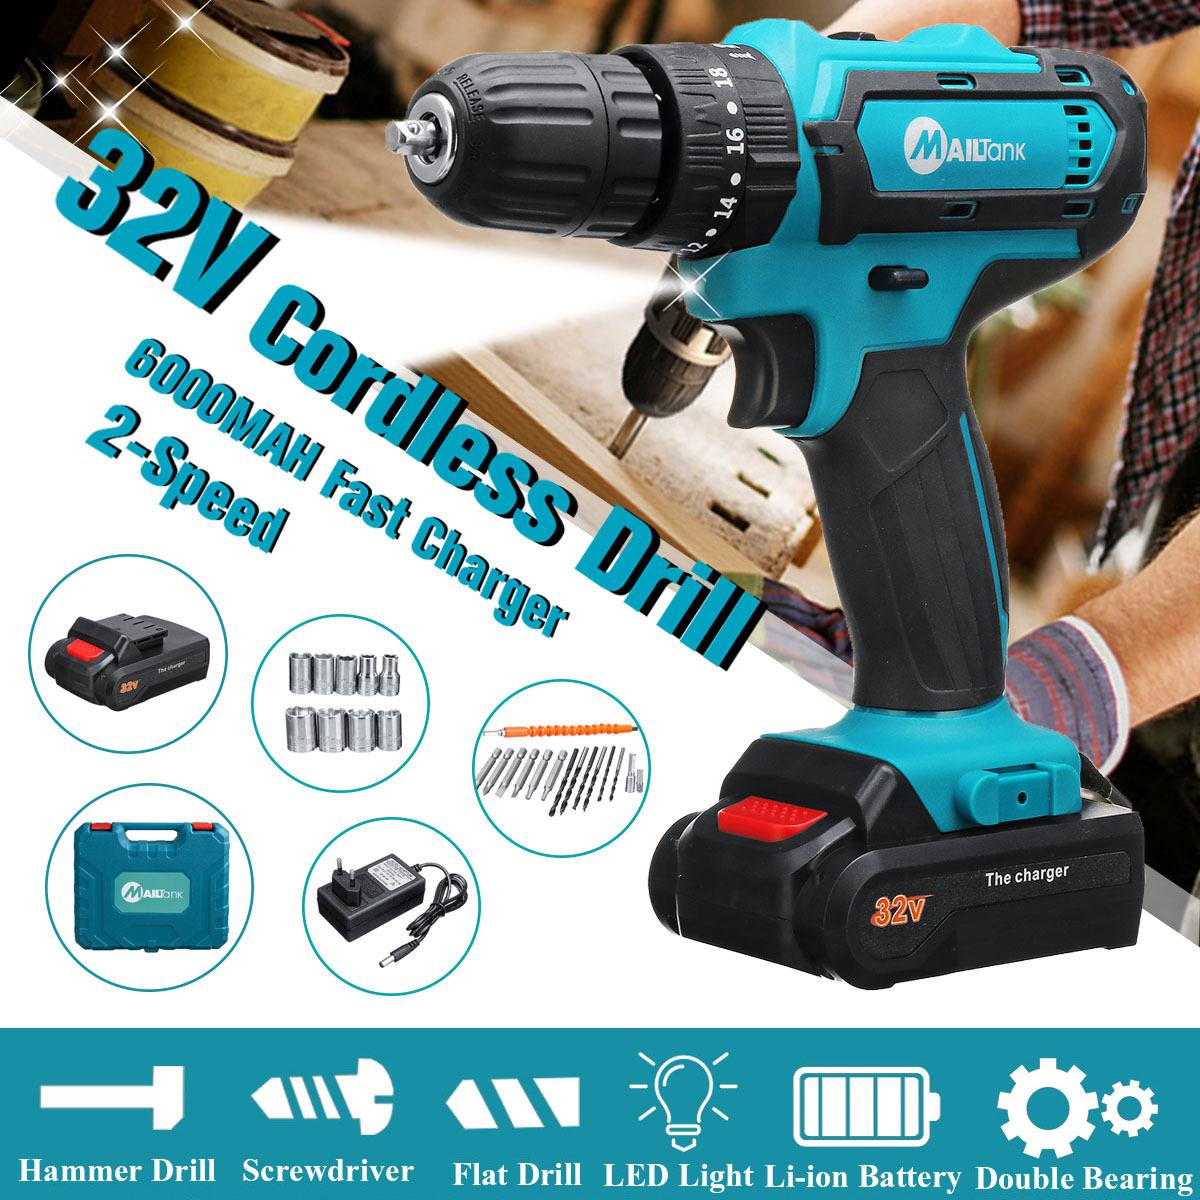 32V Electric Cordless Impact Drill with Lithium-Ion Battery 2 Speed Electric Screwdriver Power Driver 3 IN1 with LED Light